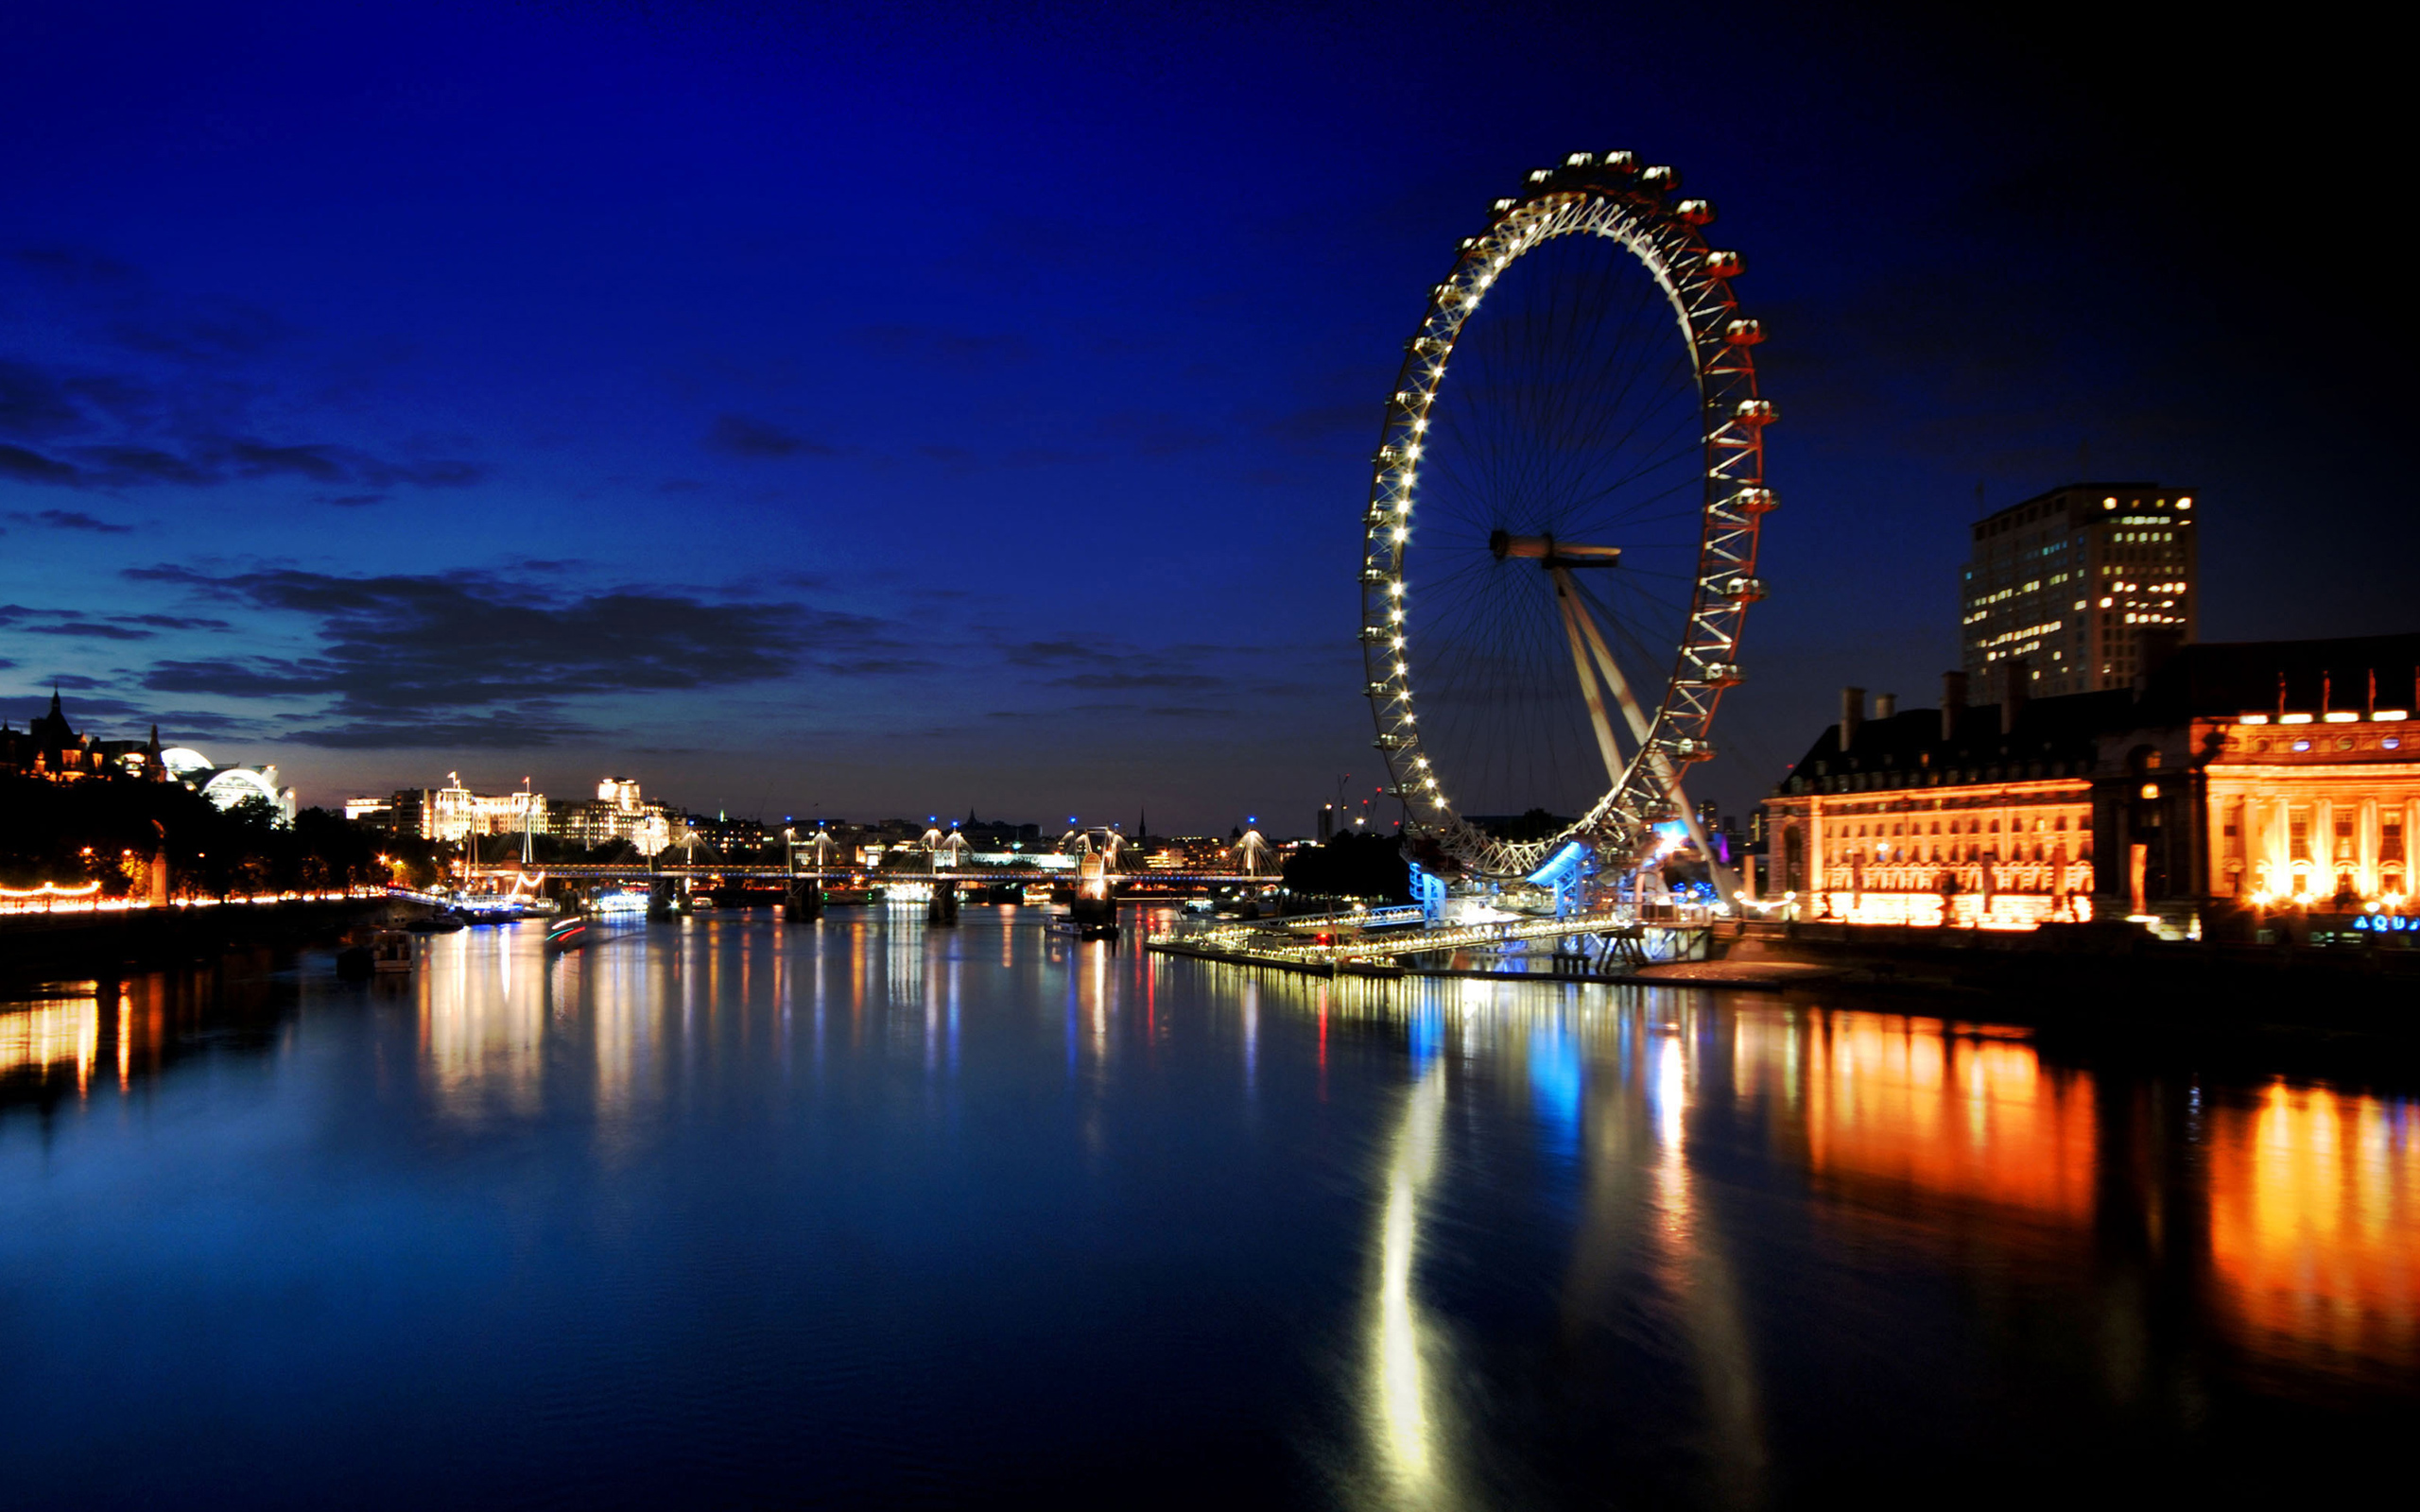 London Eye United Kingdom HD Wallpapers 2560x1600